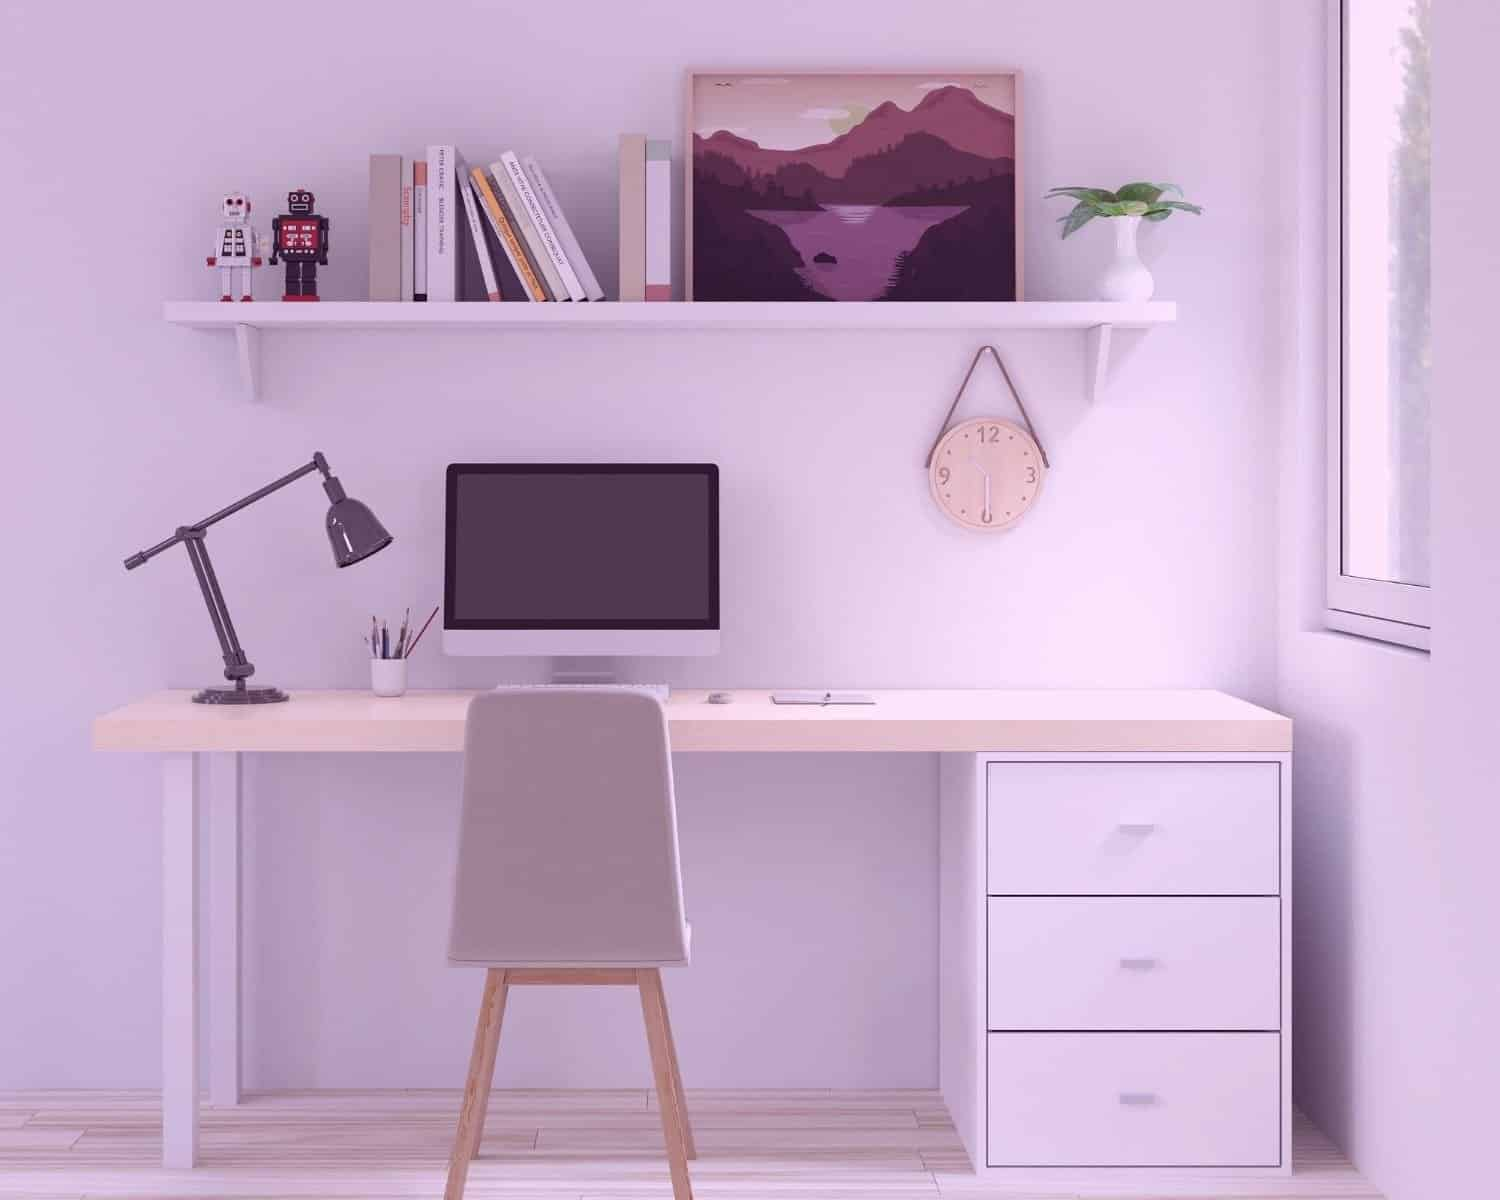 An empty desk sits bathed in light with a painting sitting on a shelf above